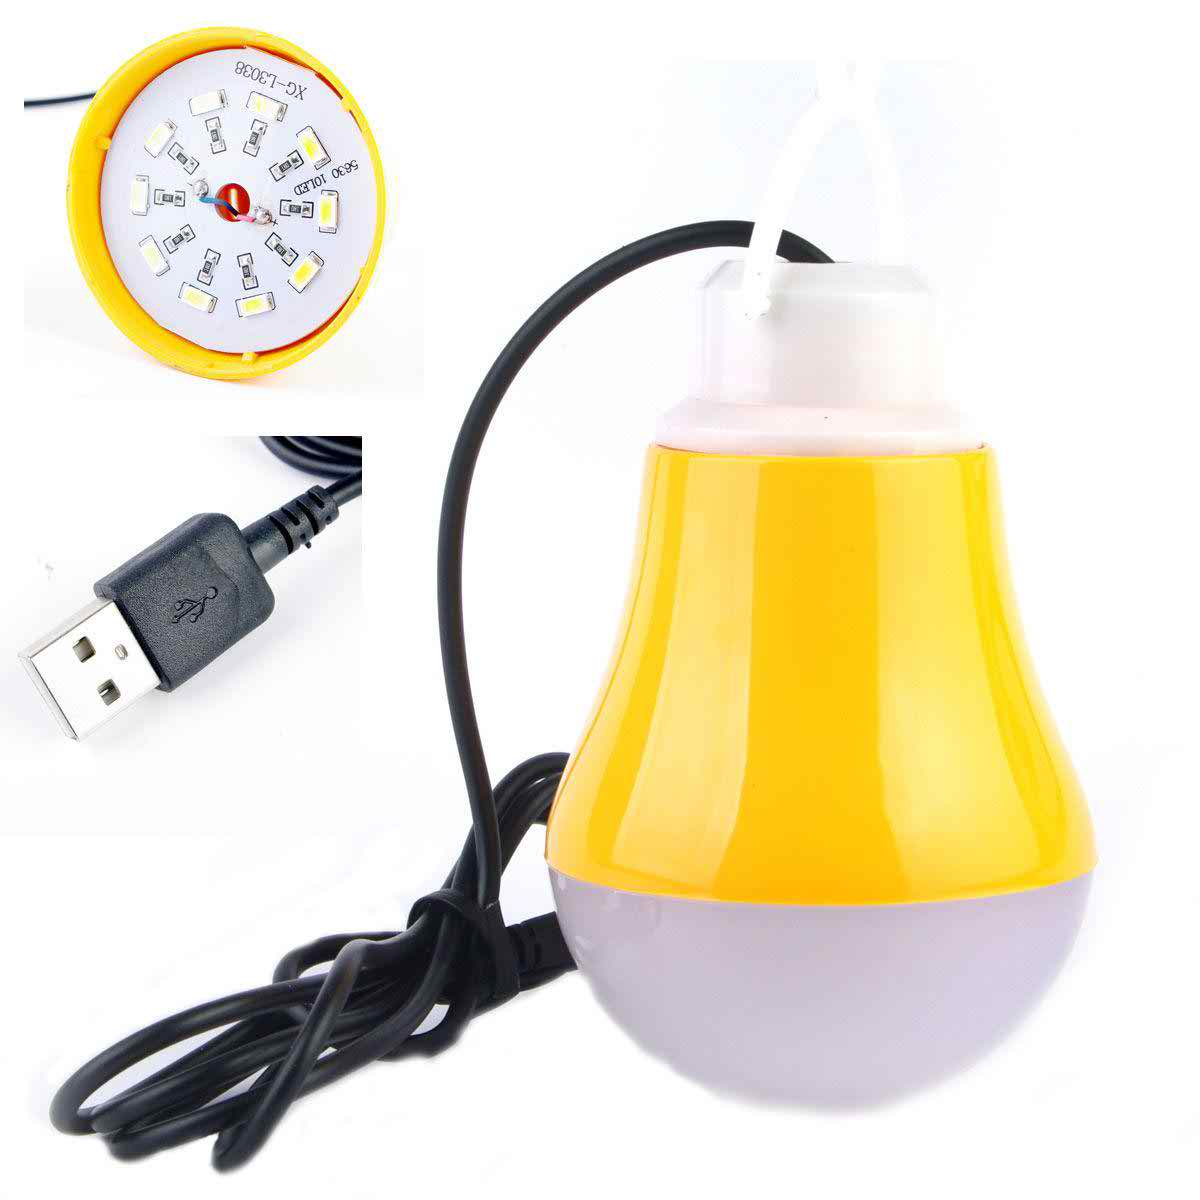 portable led light usb bulb price in pakistan at symbios pk. Black Bedroom Furniture Sets. Home Design Ideas